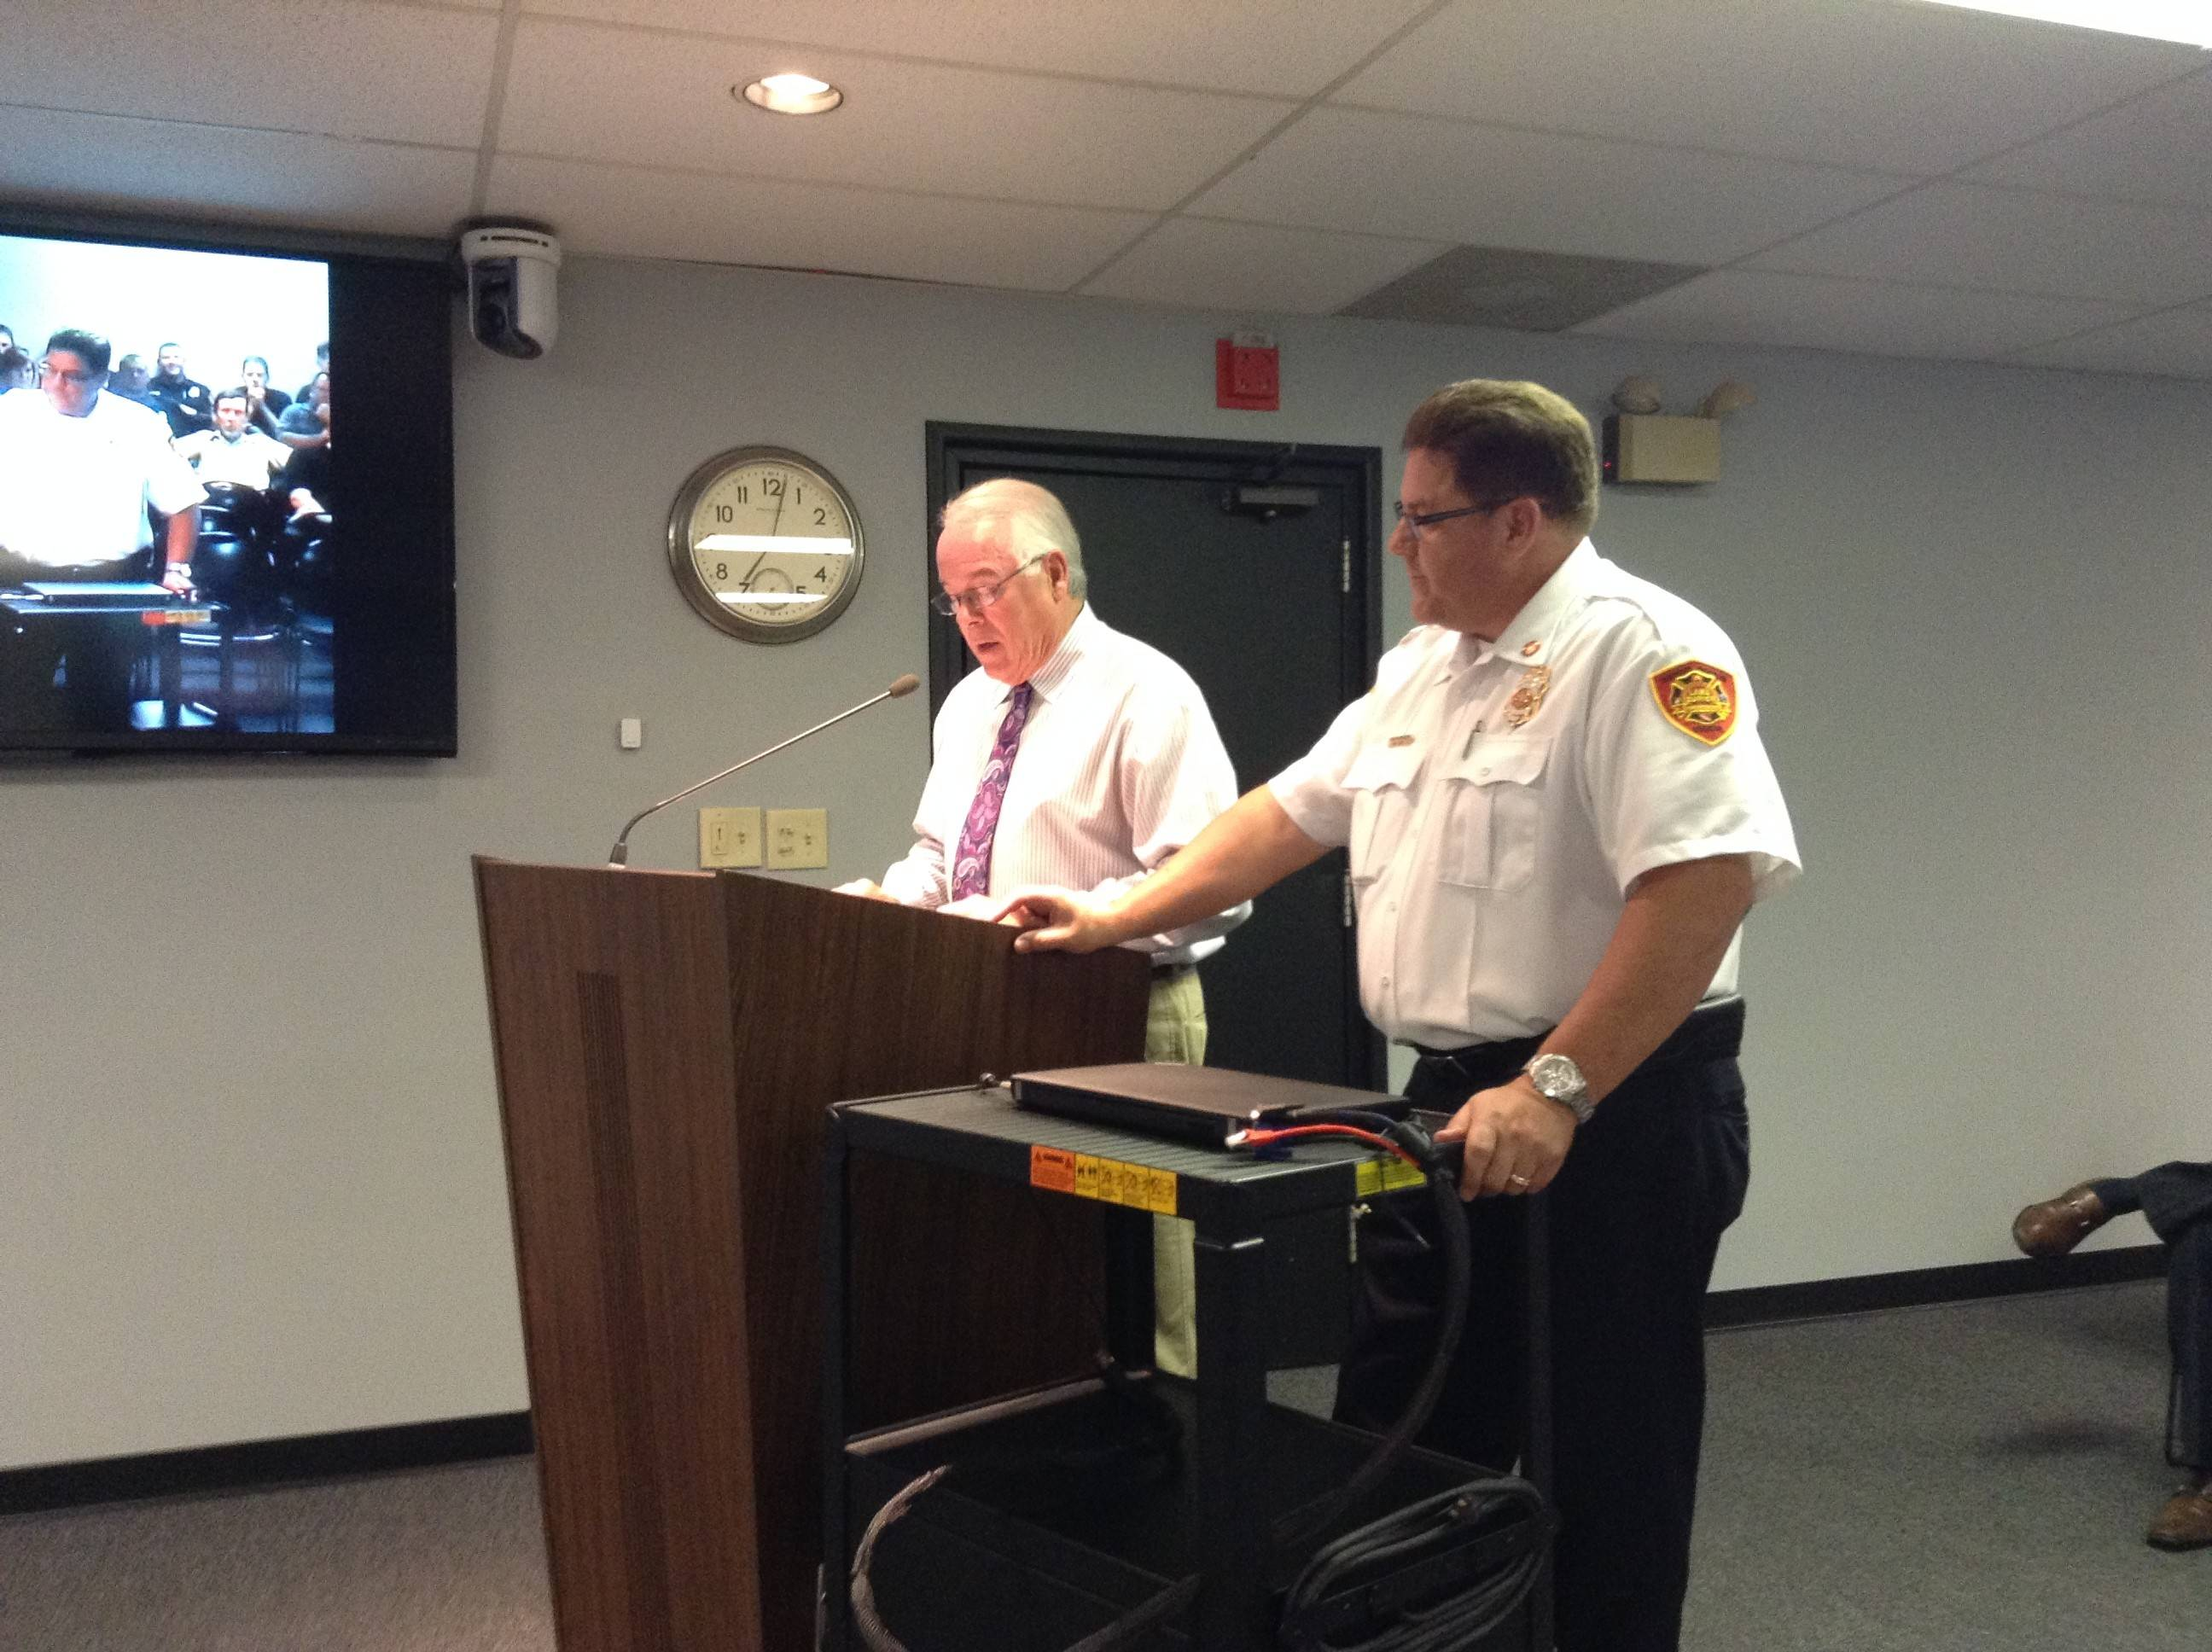 Lake Zurich Fire Chief David Wheelock, right, with Mayor Thomas Poynton, while he was lauded for 35 years of service during a recent village board meeting.